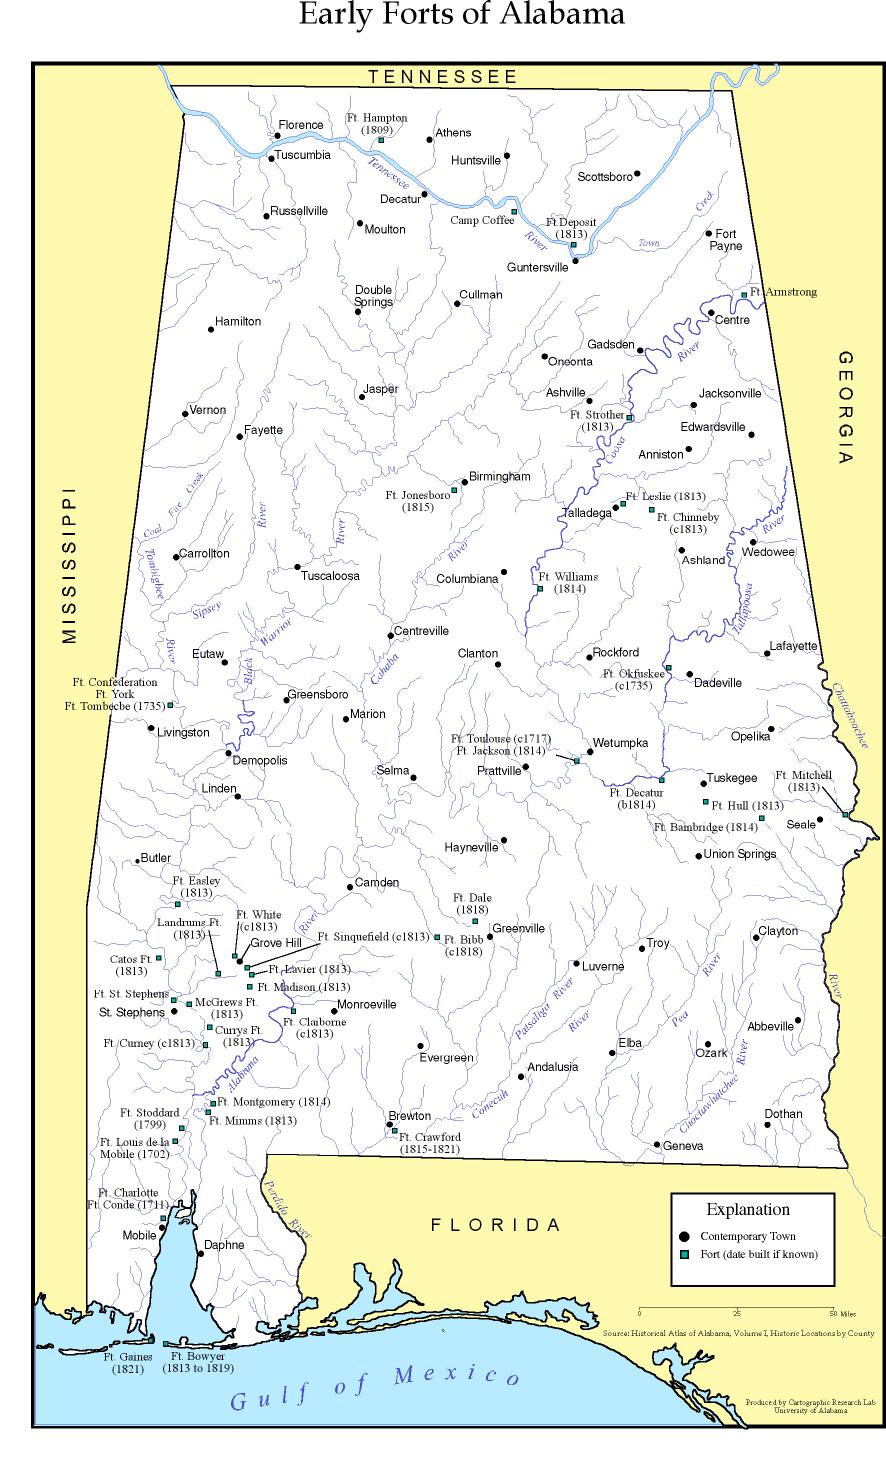 Early Forts of Alabama